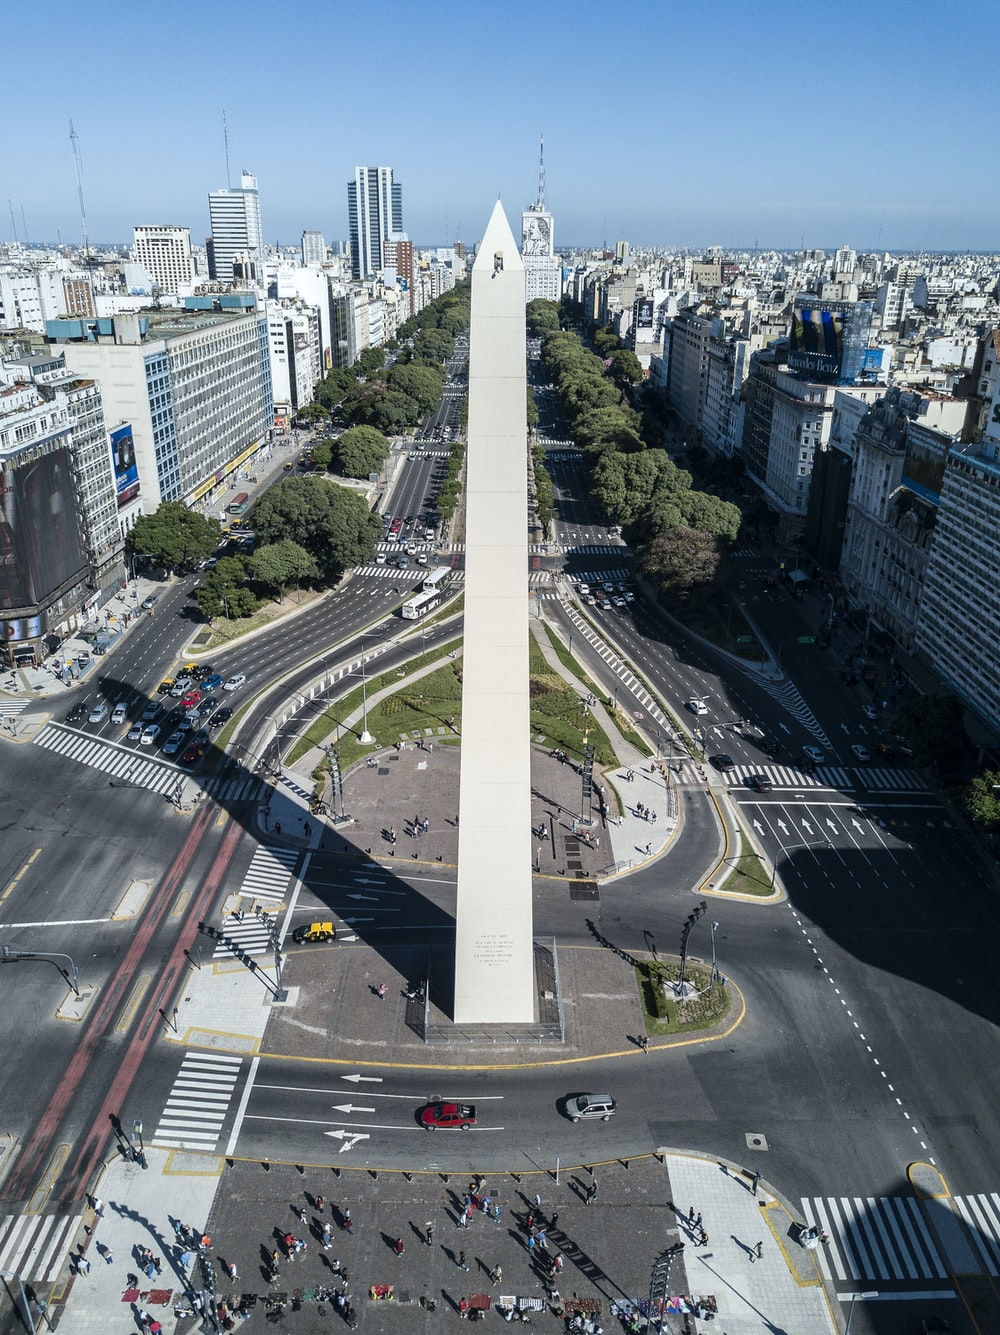 500+ Stunning Buenos Aires Pictures | Download Free Images on Unsplash